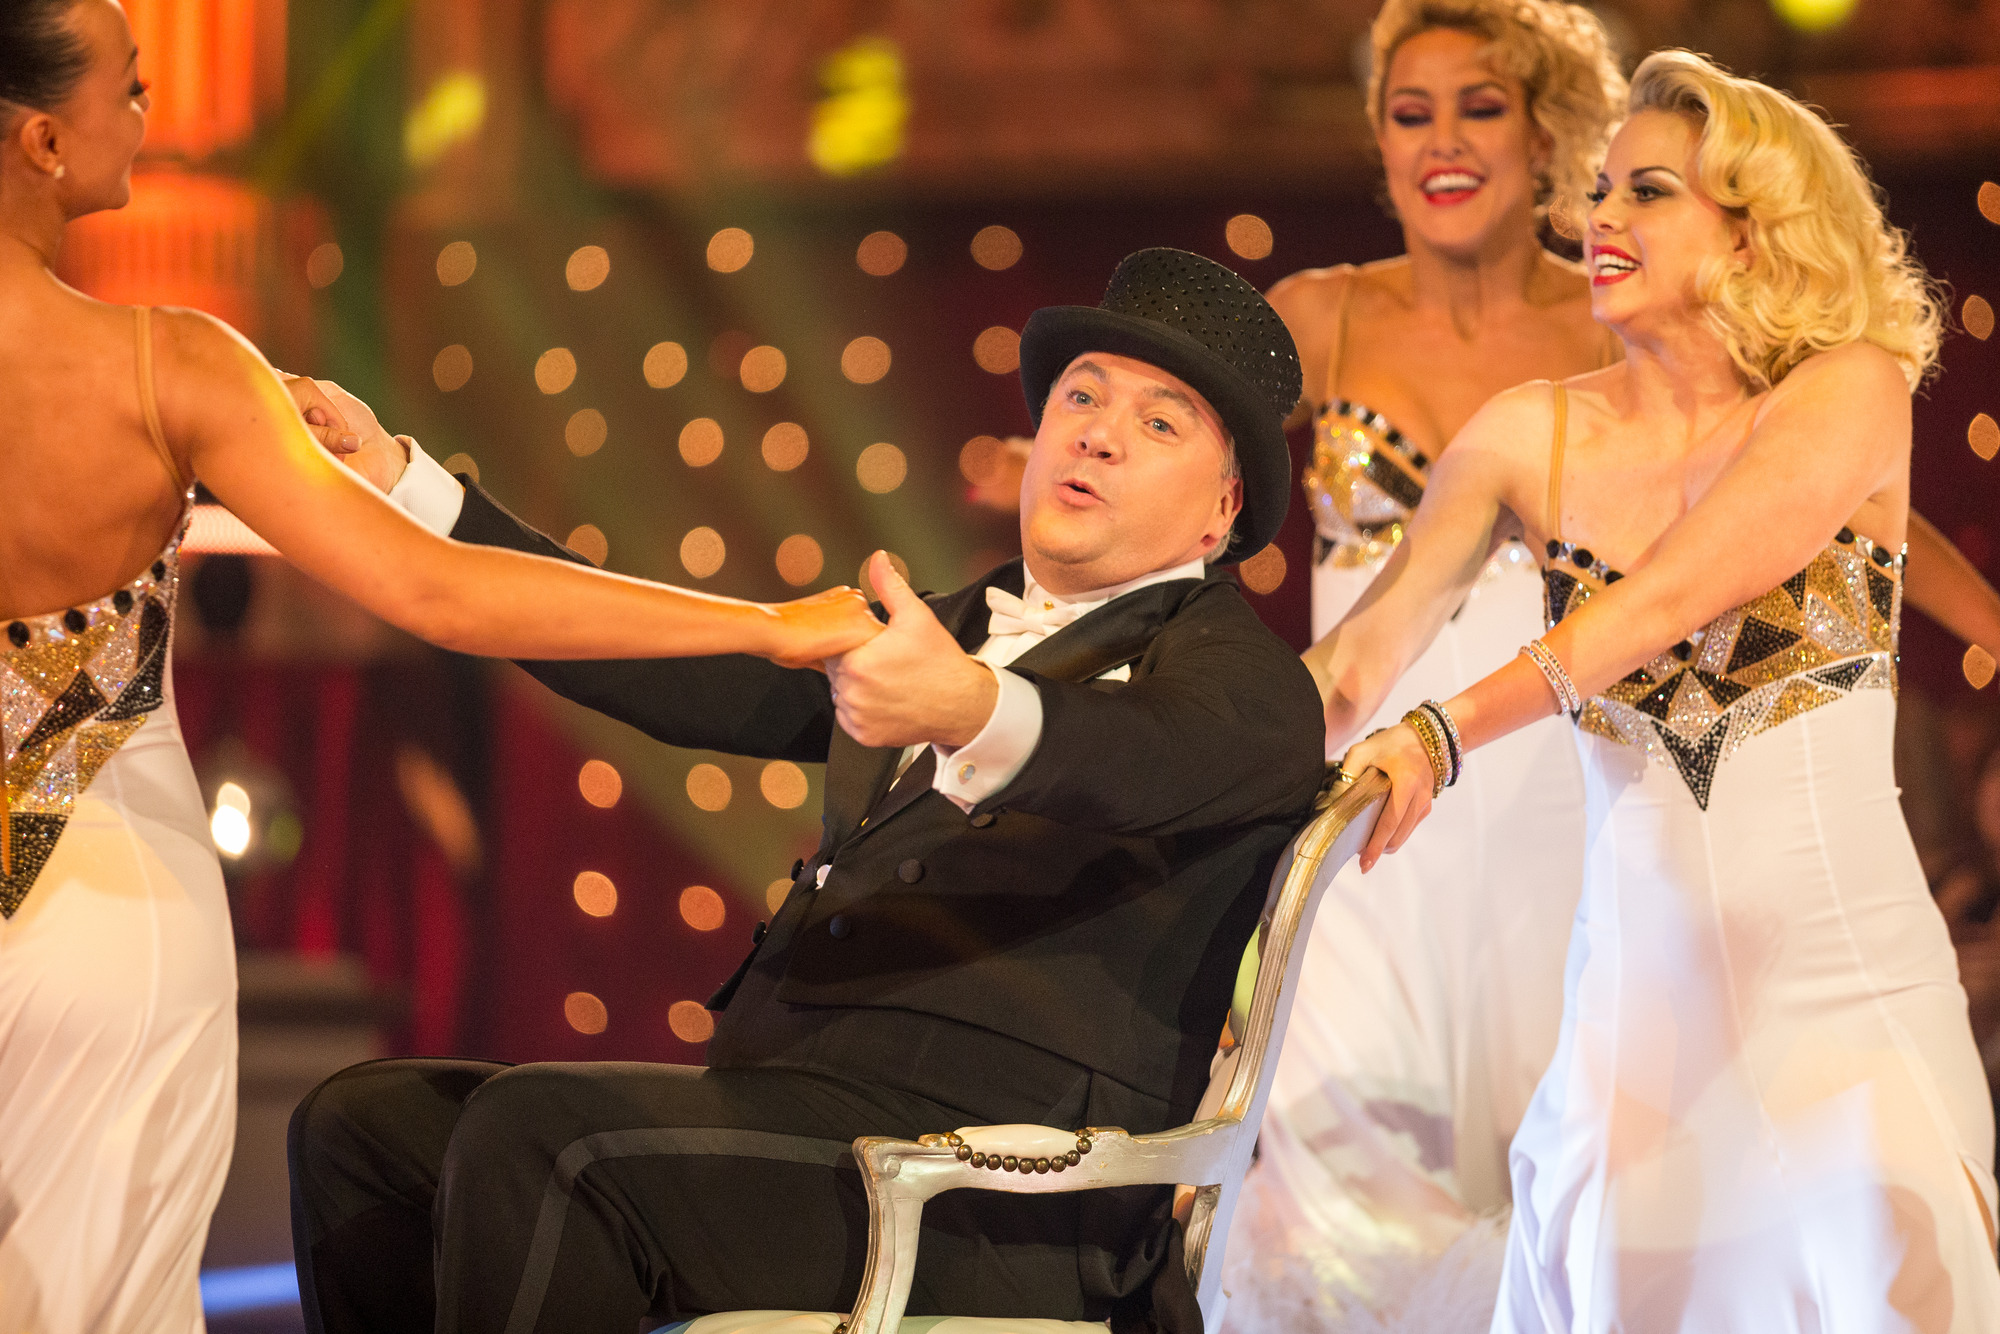 Ed Balls MP, Strictly Come Dancing Pro Dancers - (C) BBC - Photographer: Guy Levy